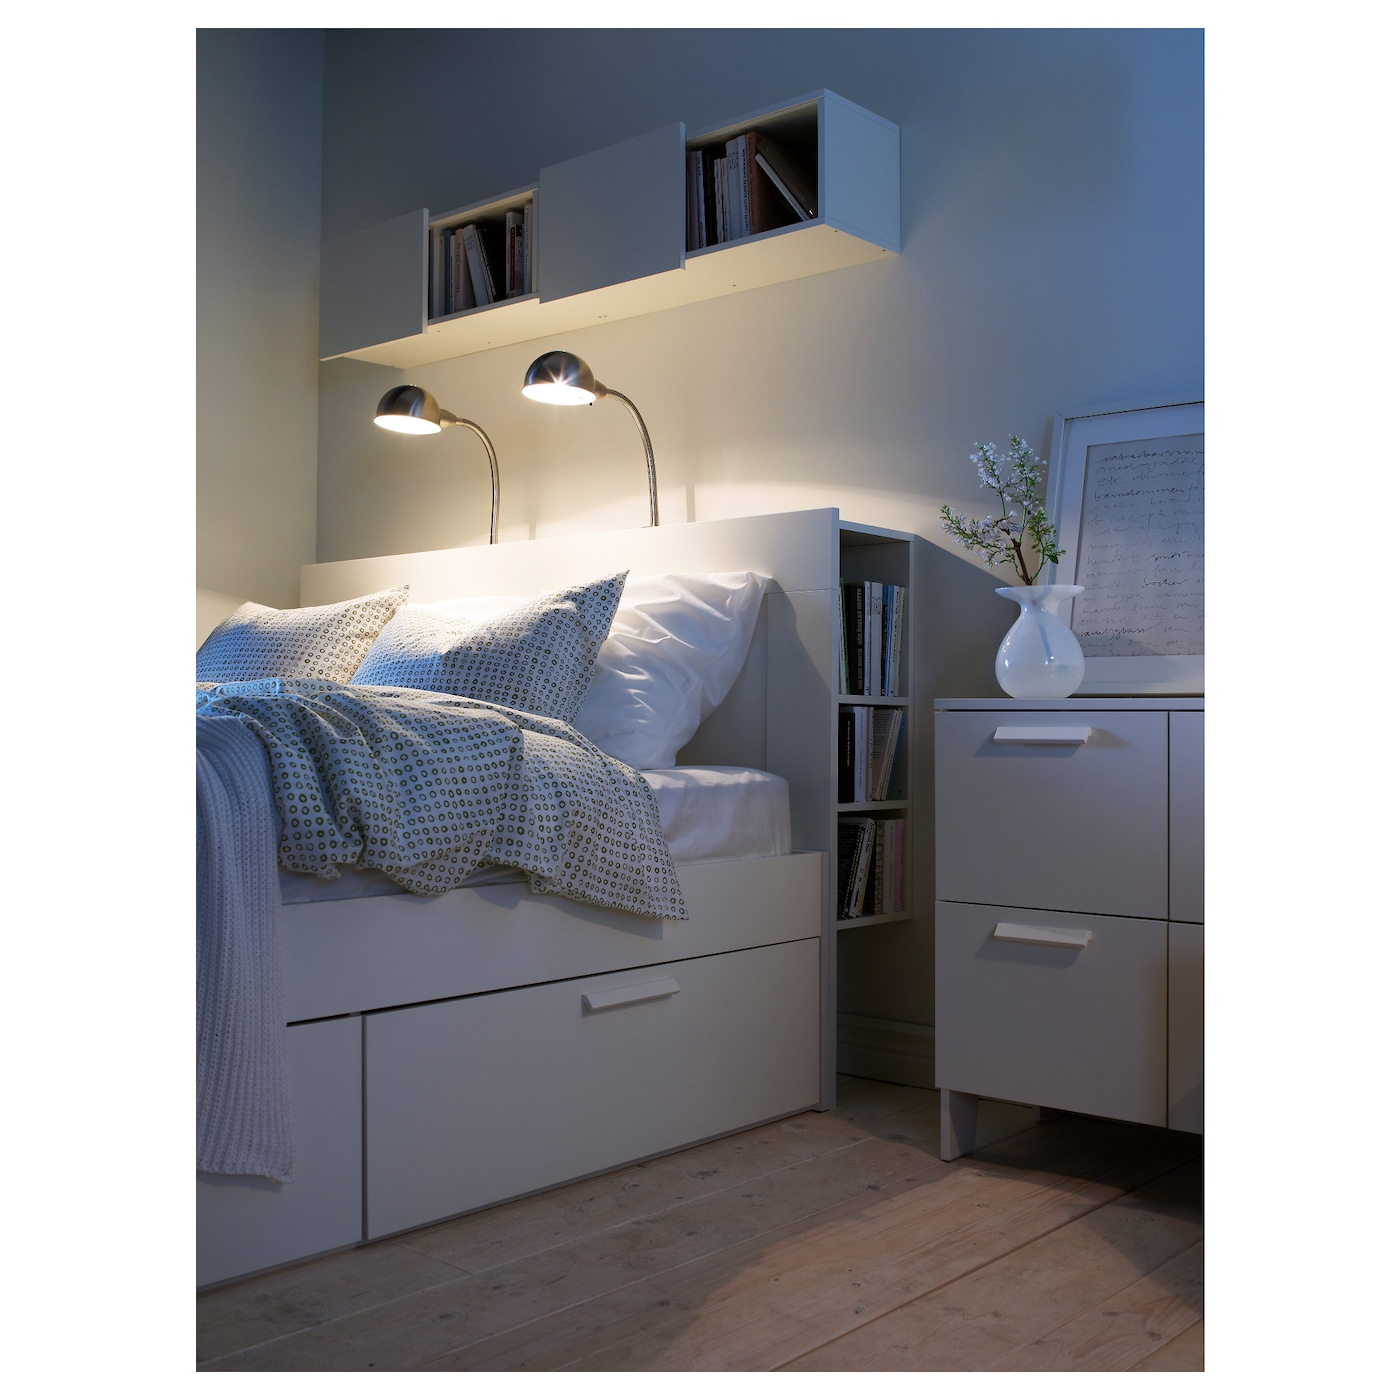 brimnes t te de lit avec rangement blanc 140 cm ikea. Black Bedroom Furniture Sets. Home Design Ideas